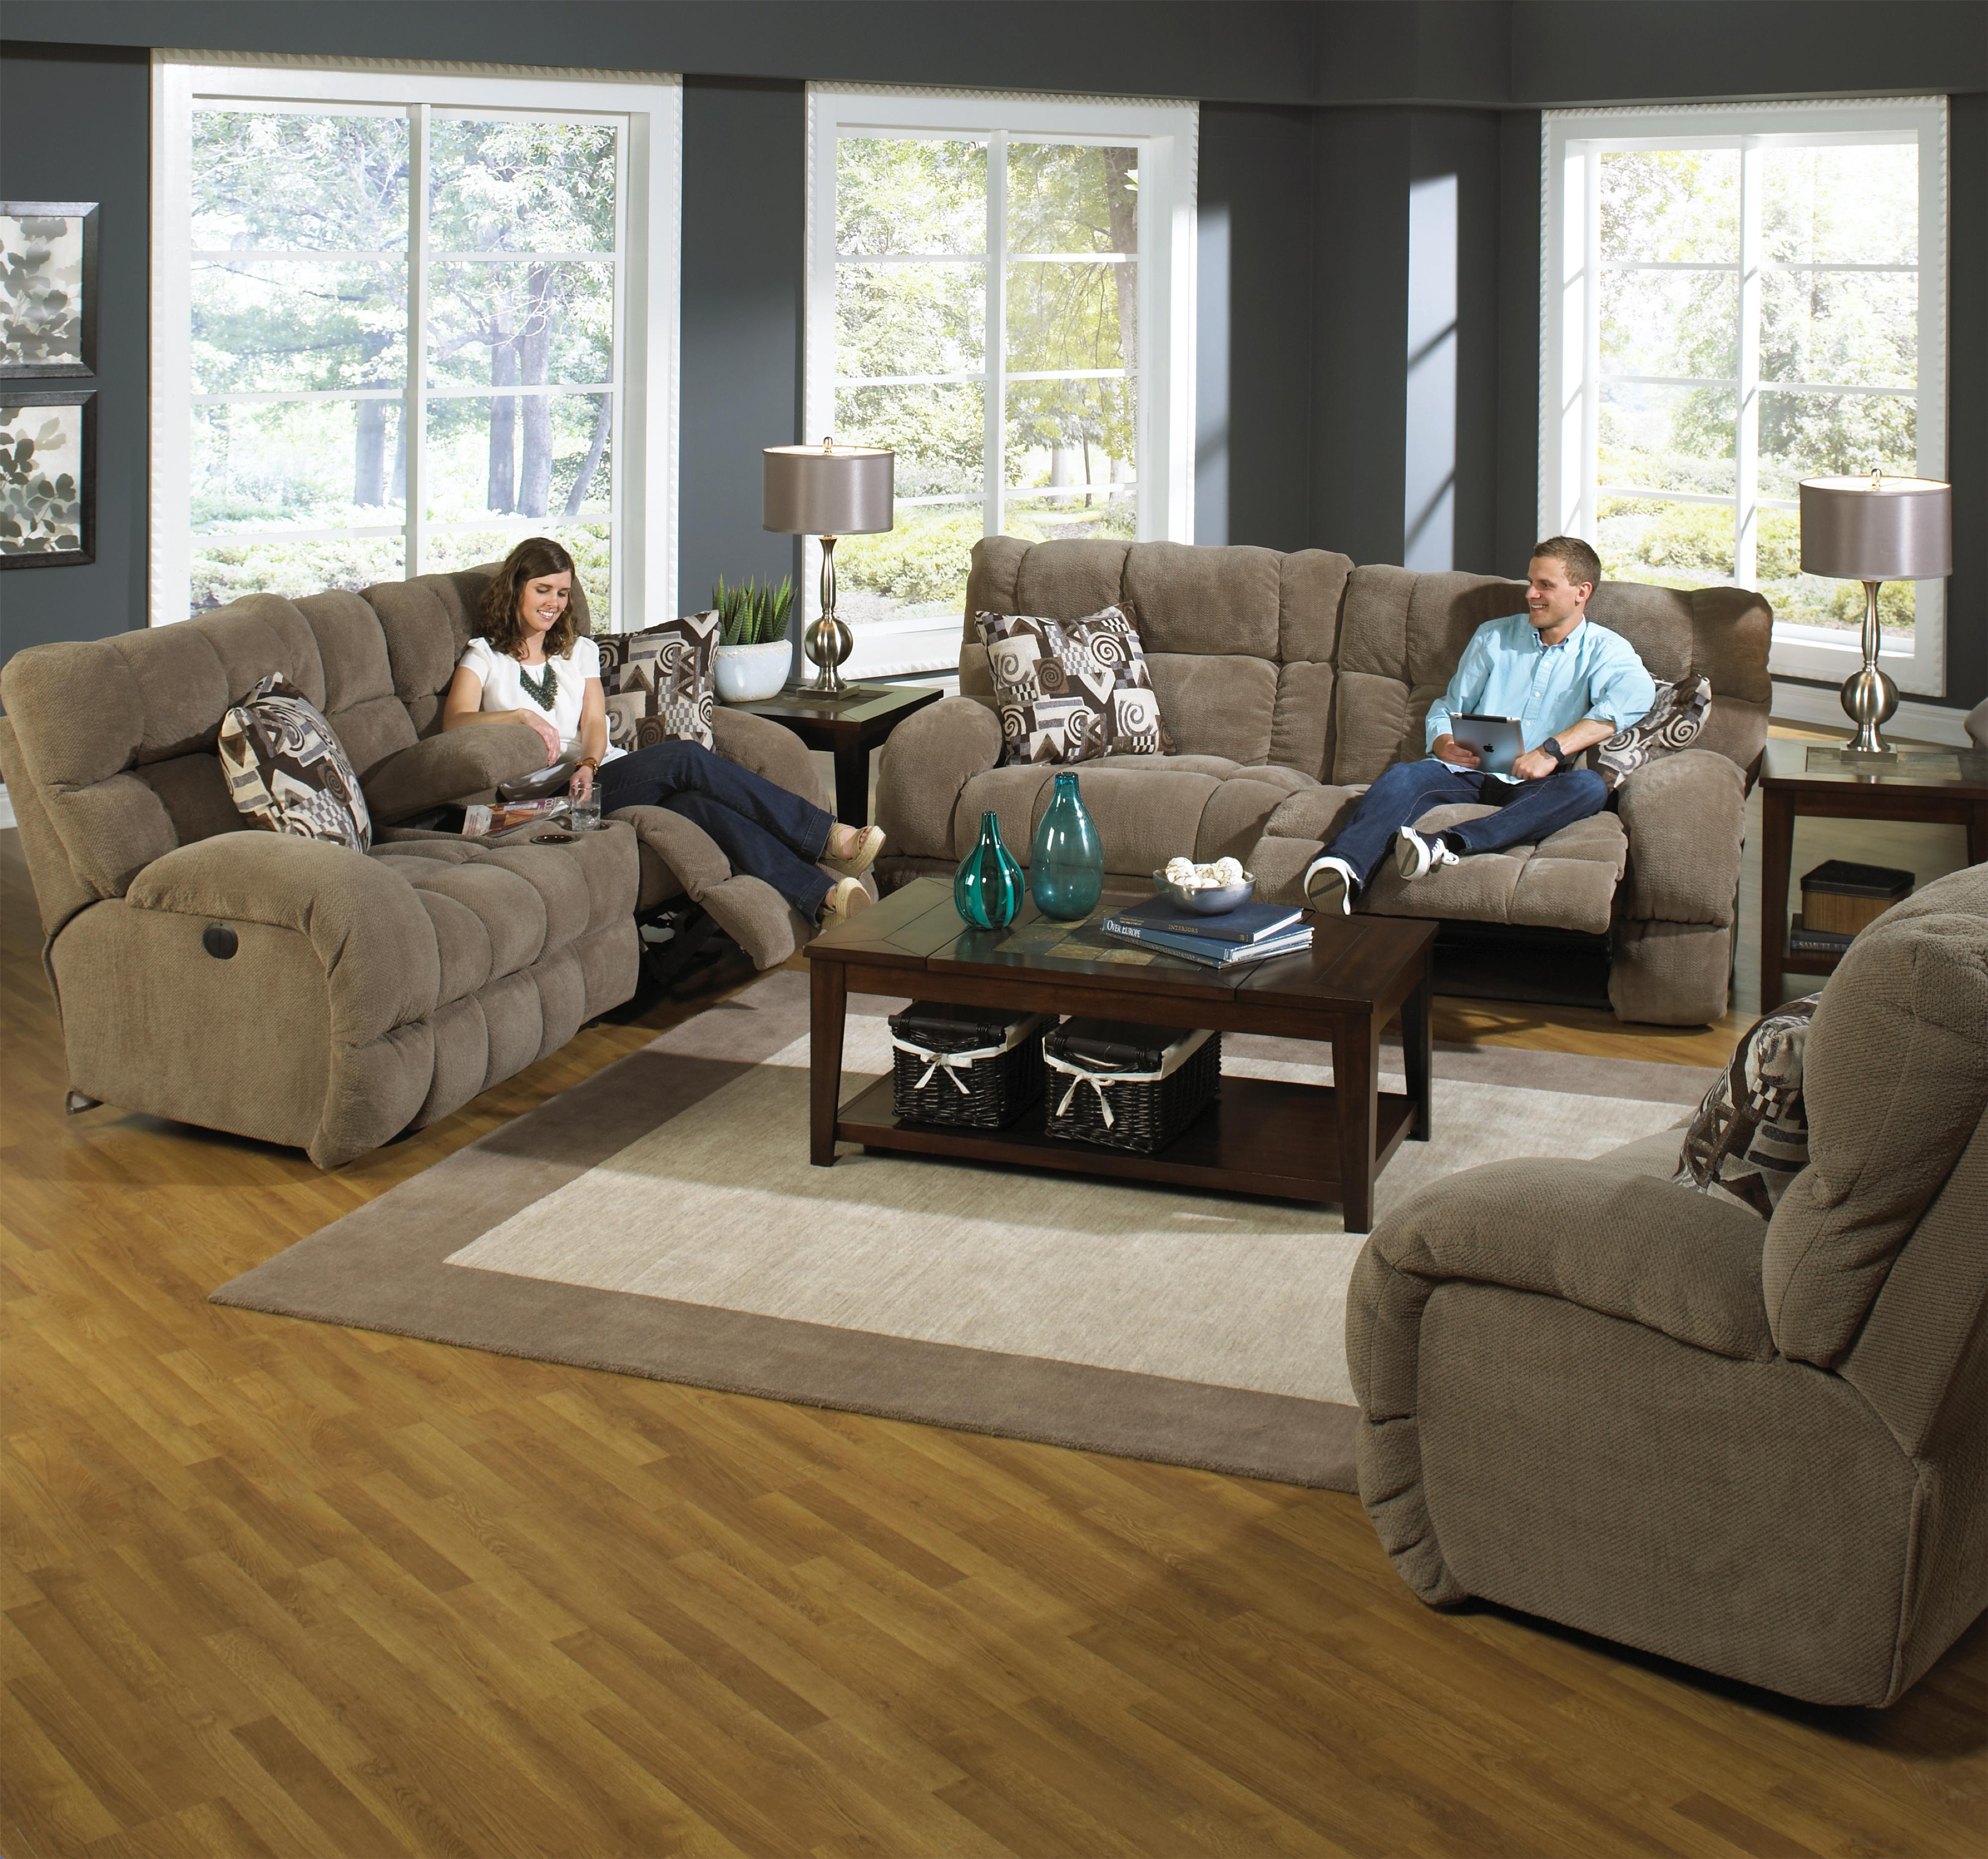 Power Lay Flat Reclining Sofa with Wide Seats by Catnapper